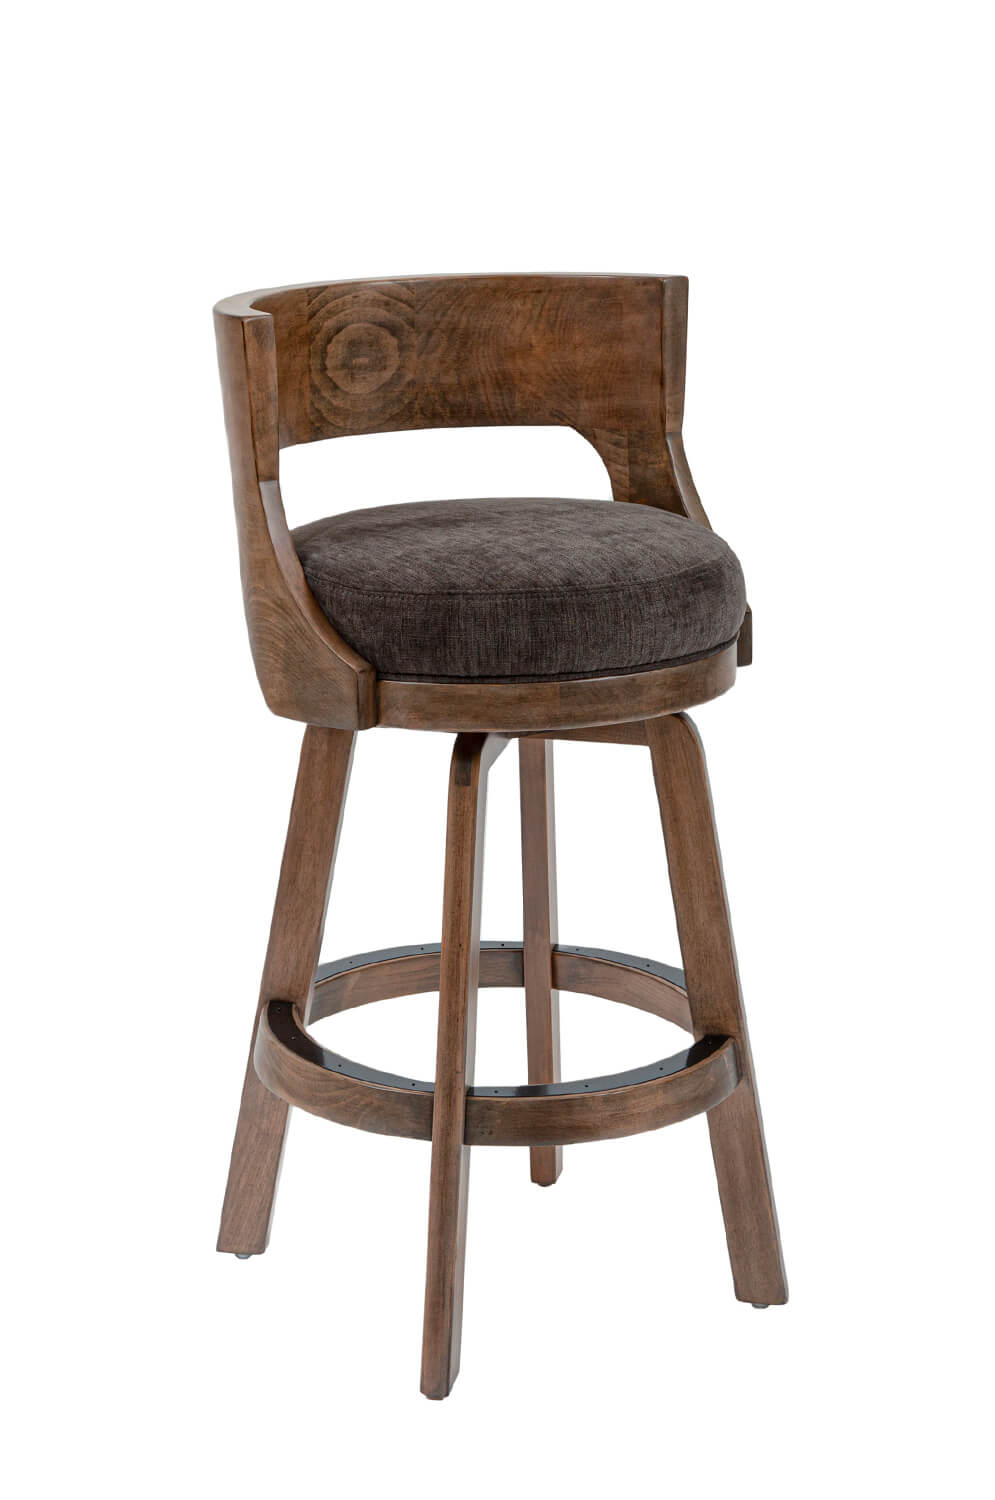 Darafeev's Gen Wooden Swivel Stool with Low Back